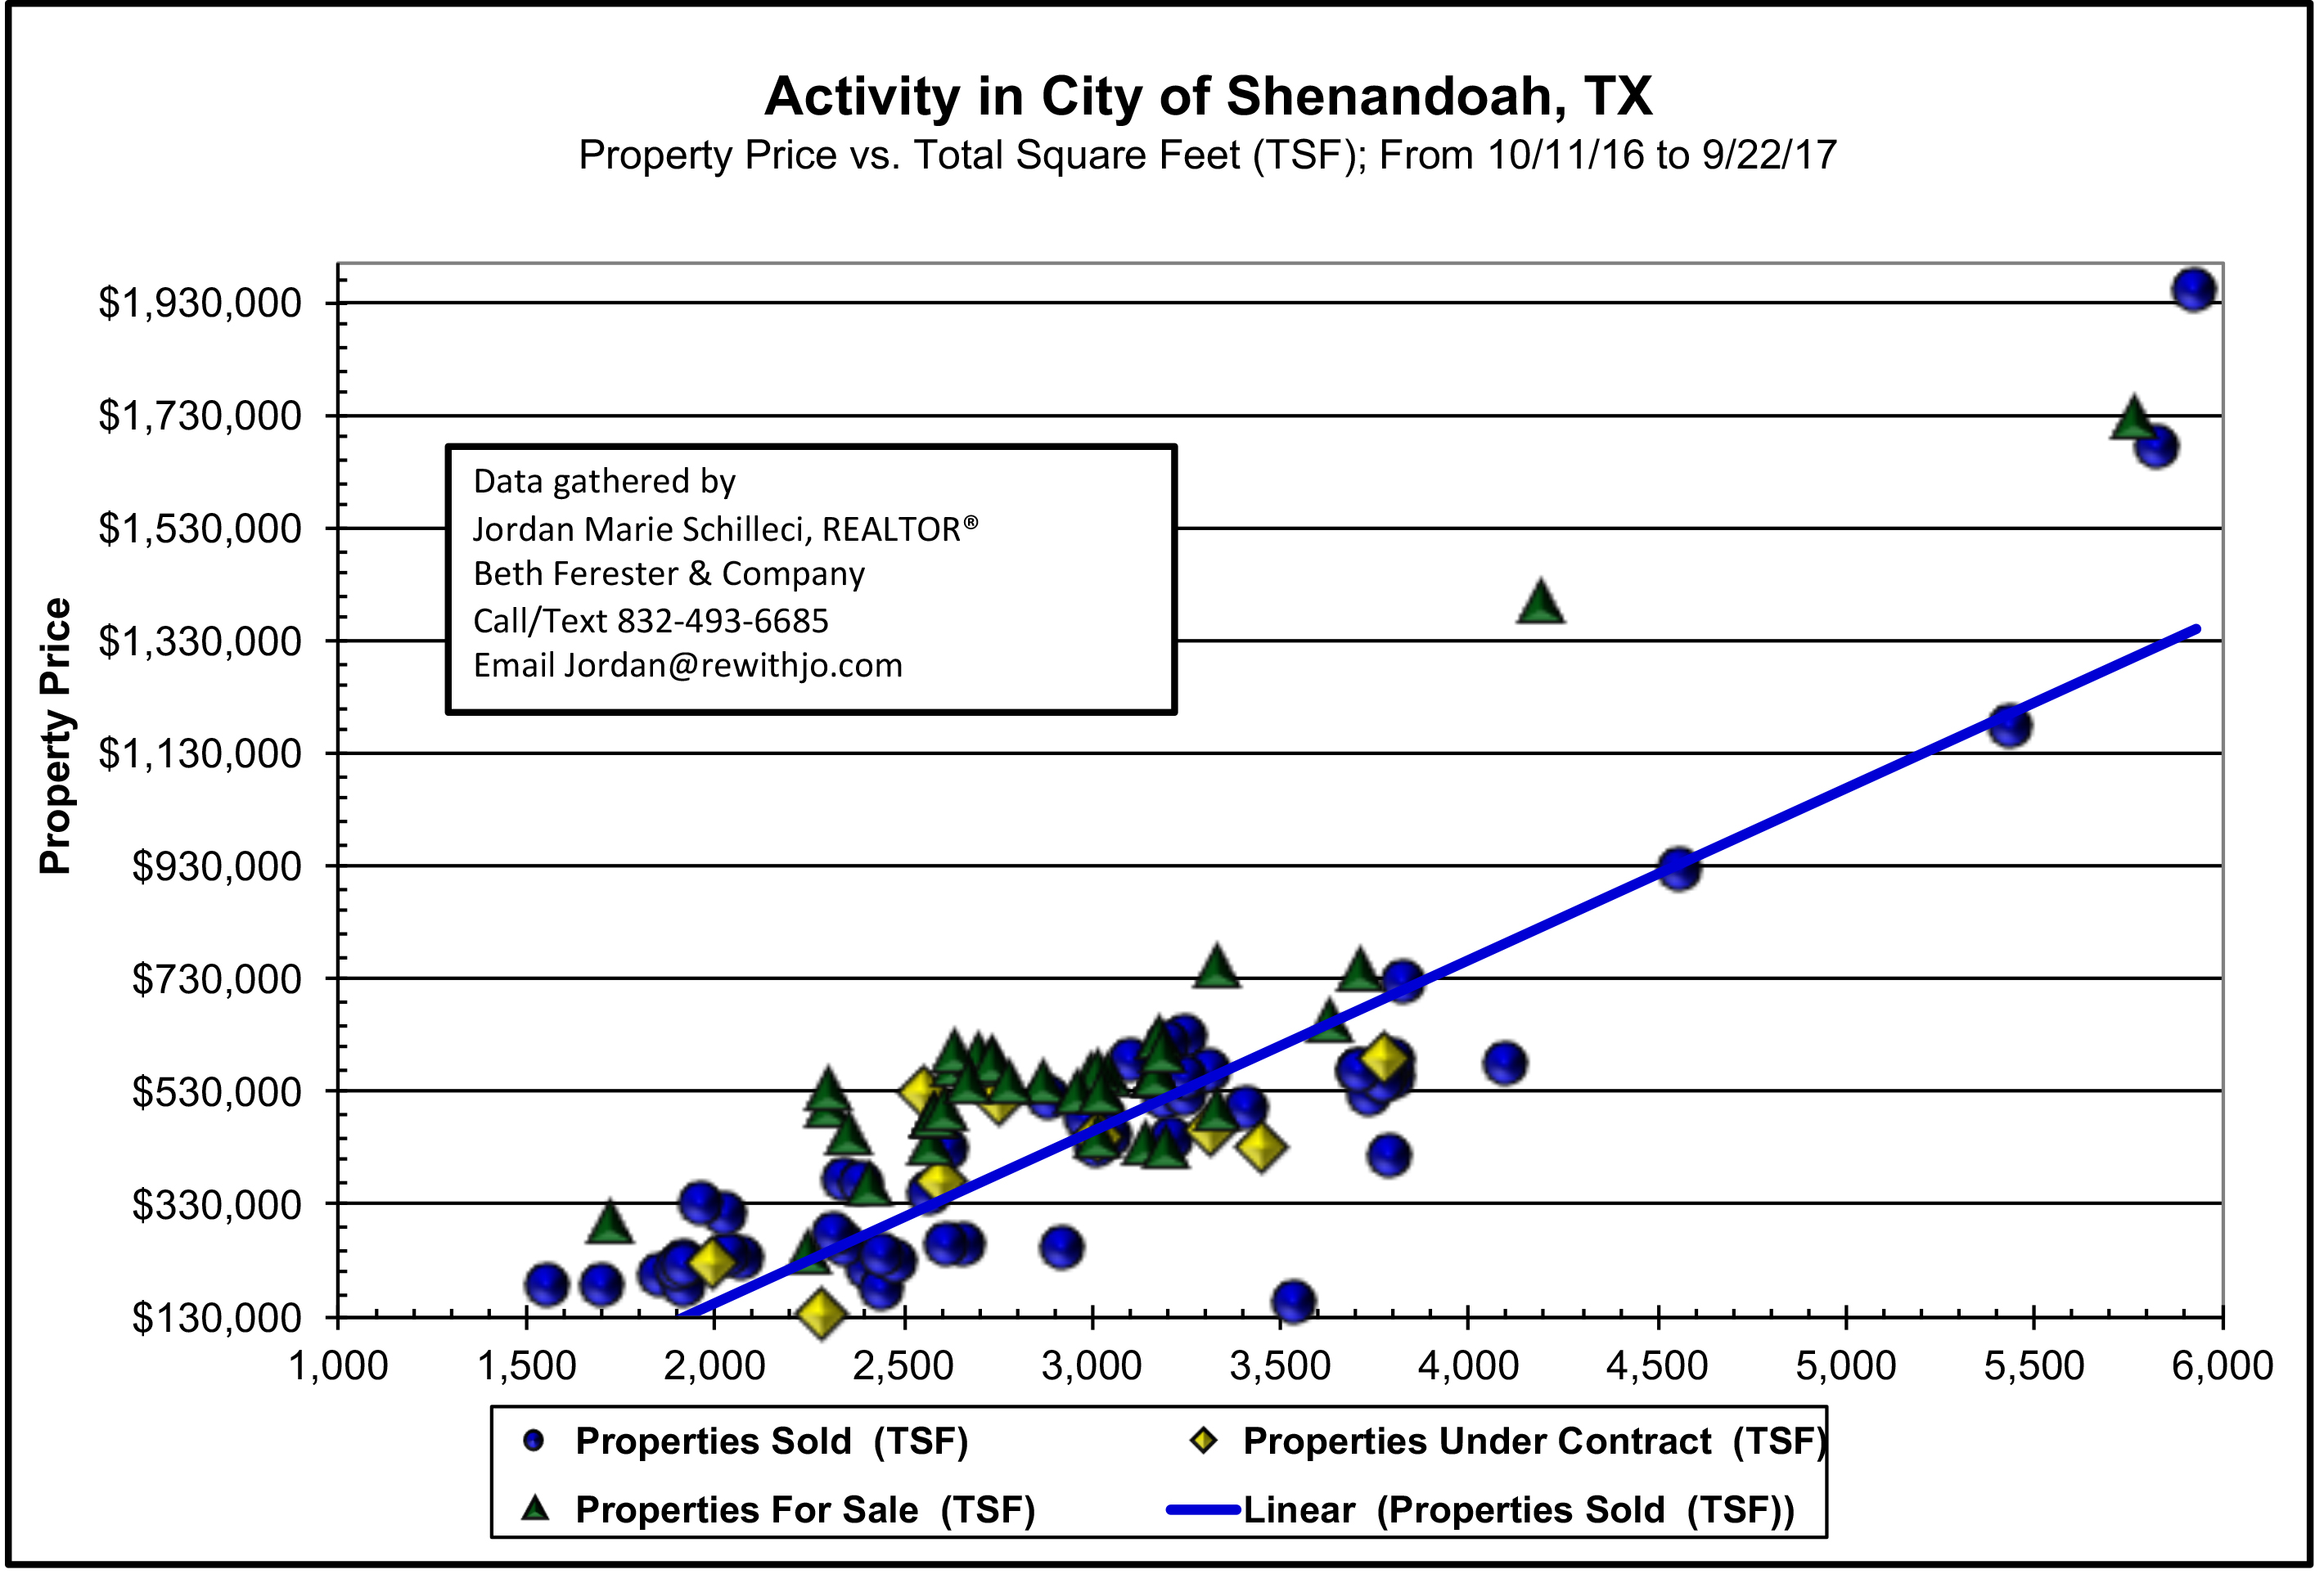 shenandoah tx market update october 2017 scattergram prices of home selling and for sale